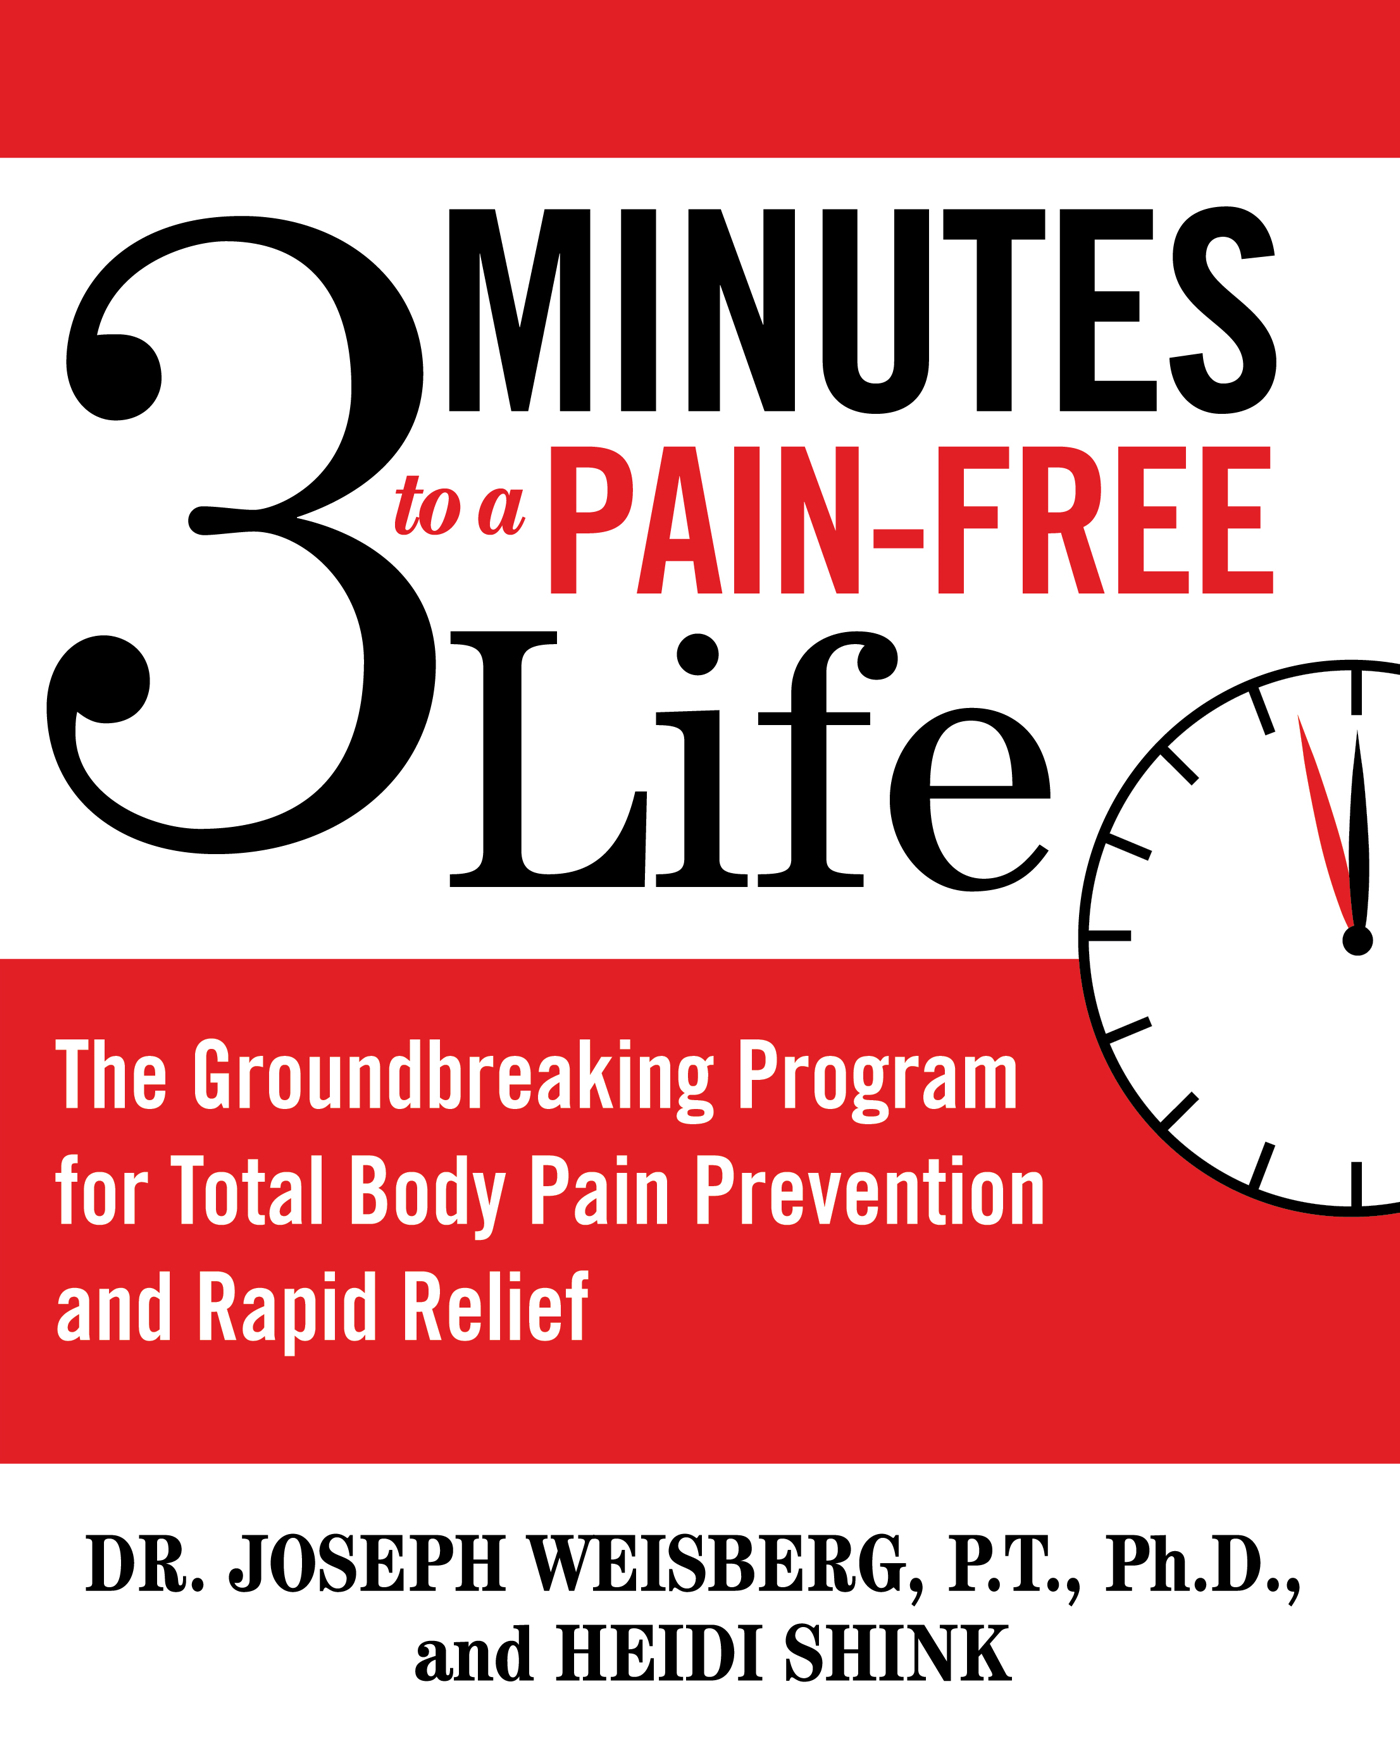 3 Minutes to a Pain-Free Life The Groundbreaking Program for Total Body Pain Prevention and Rapid Relief